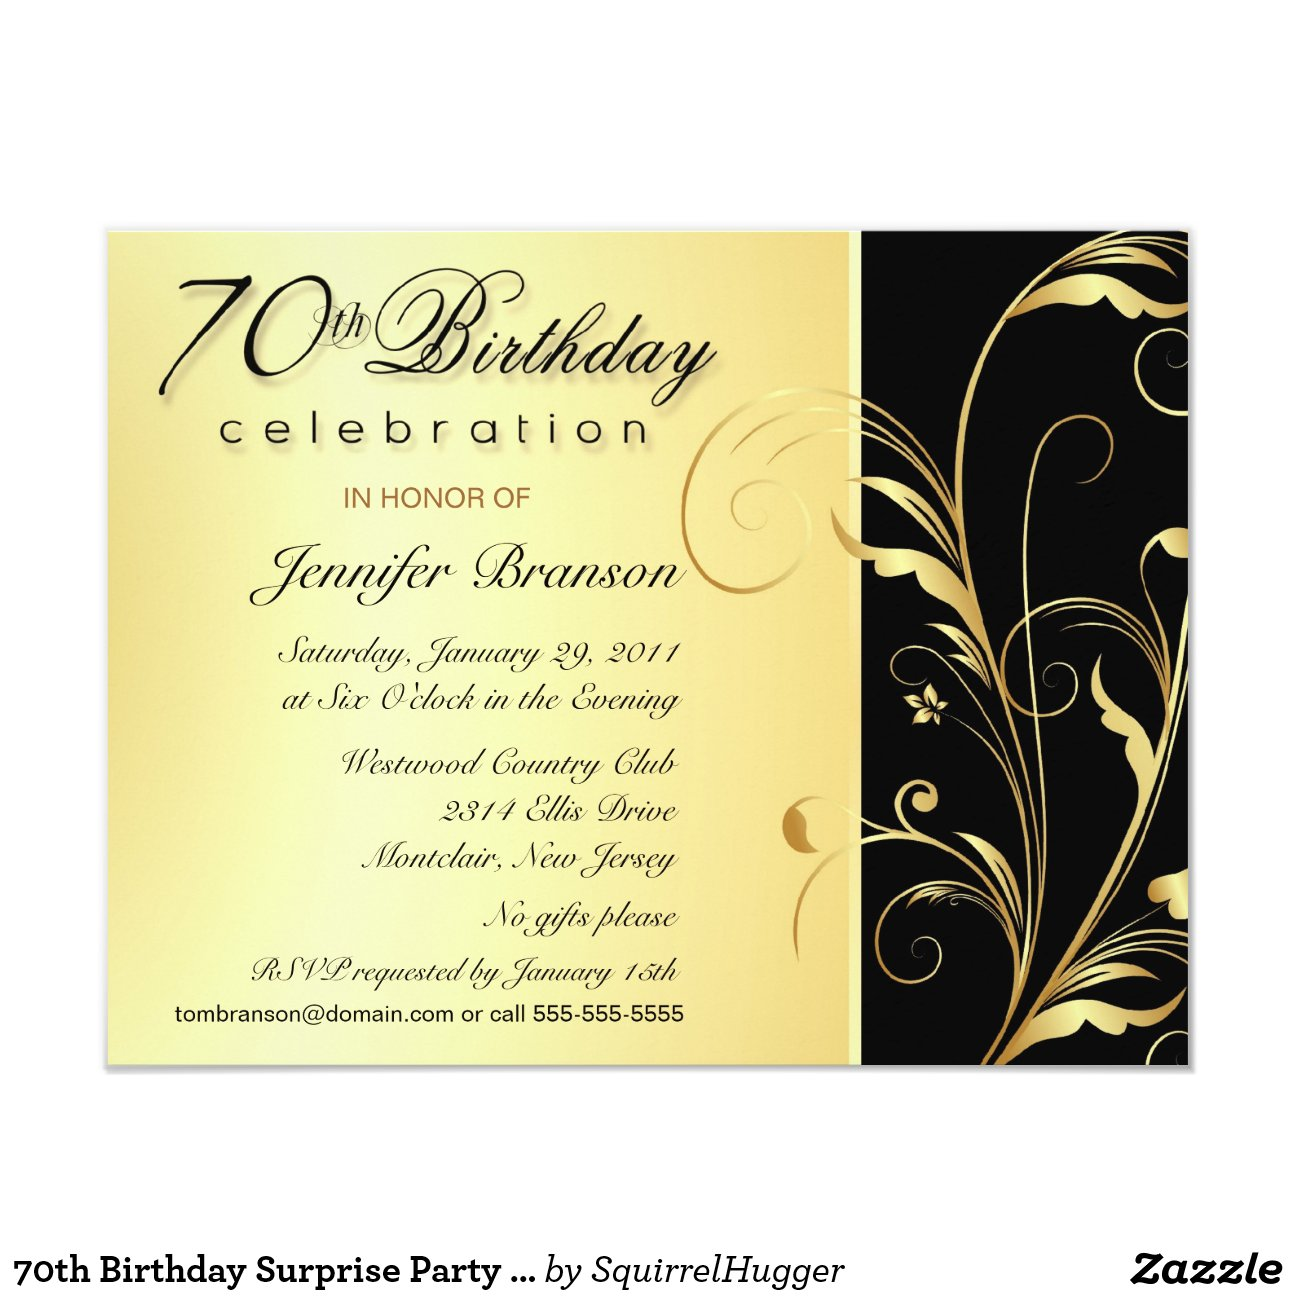 70th_birthday_surprise_party_invitations ...